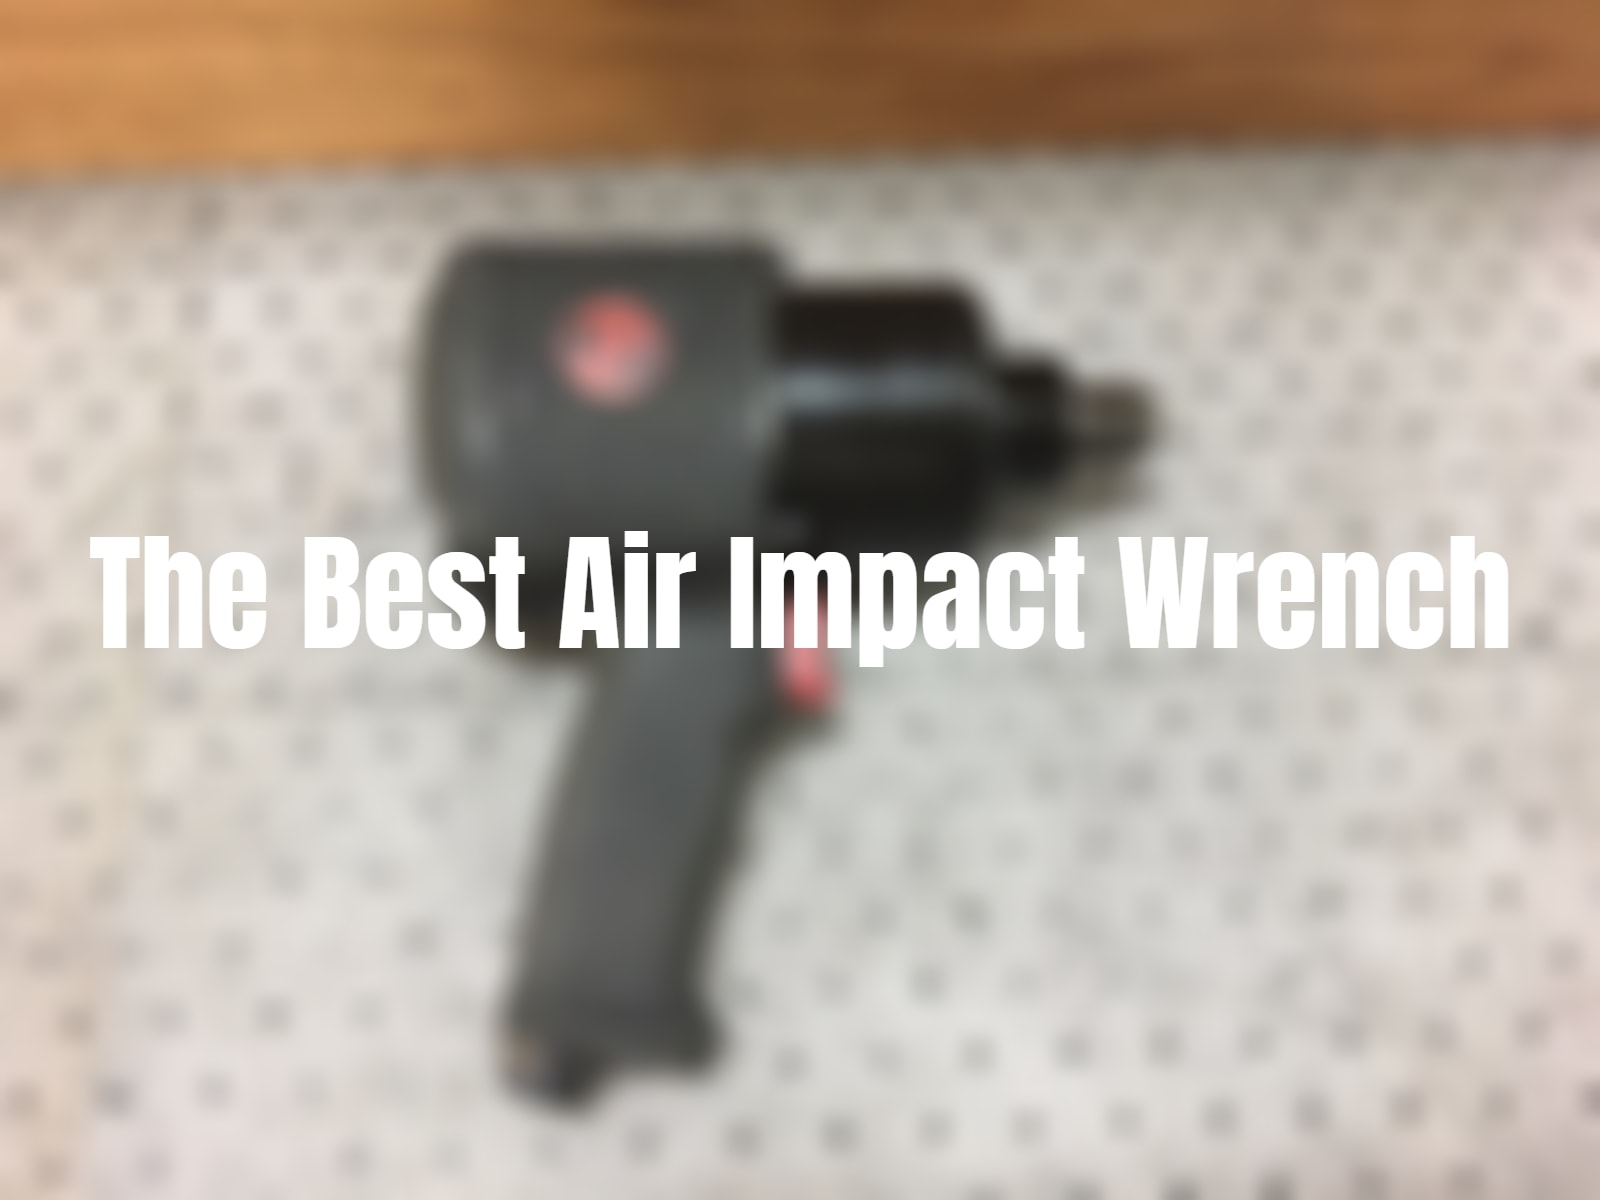 Best Air Impact Wrench of 2019 - Our Reviews & Guide